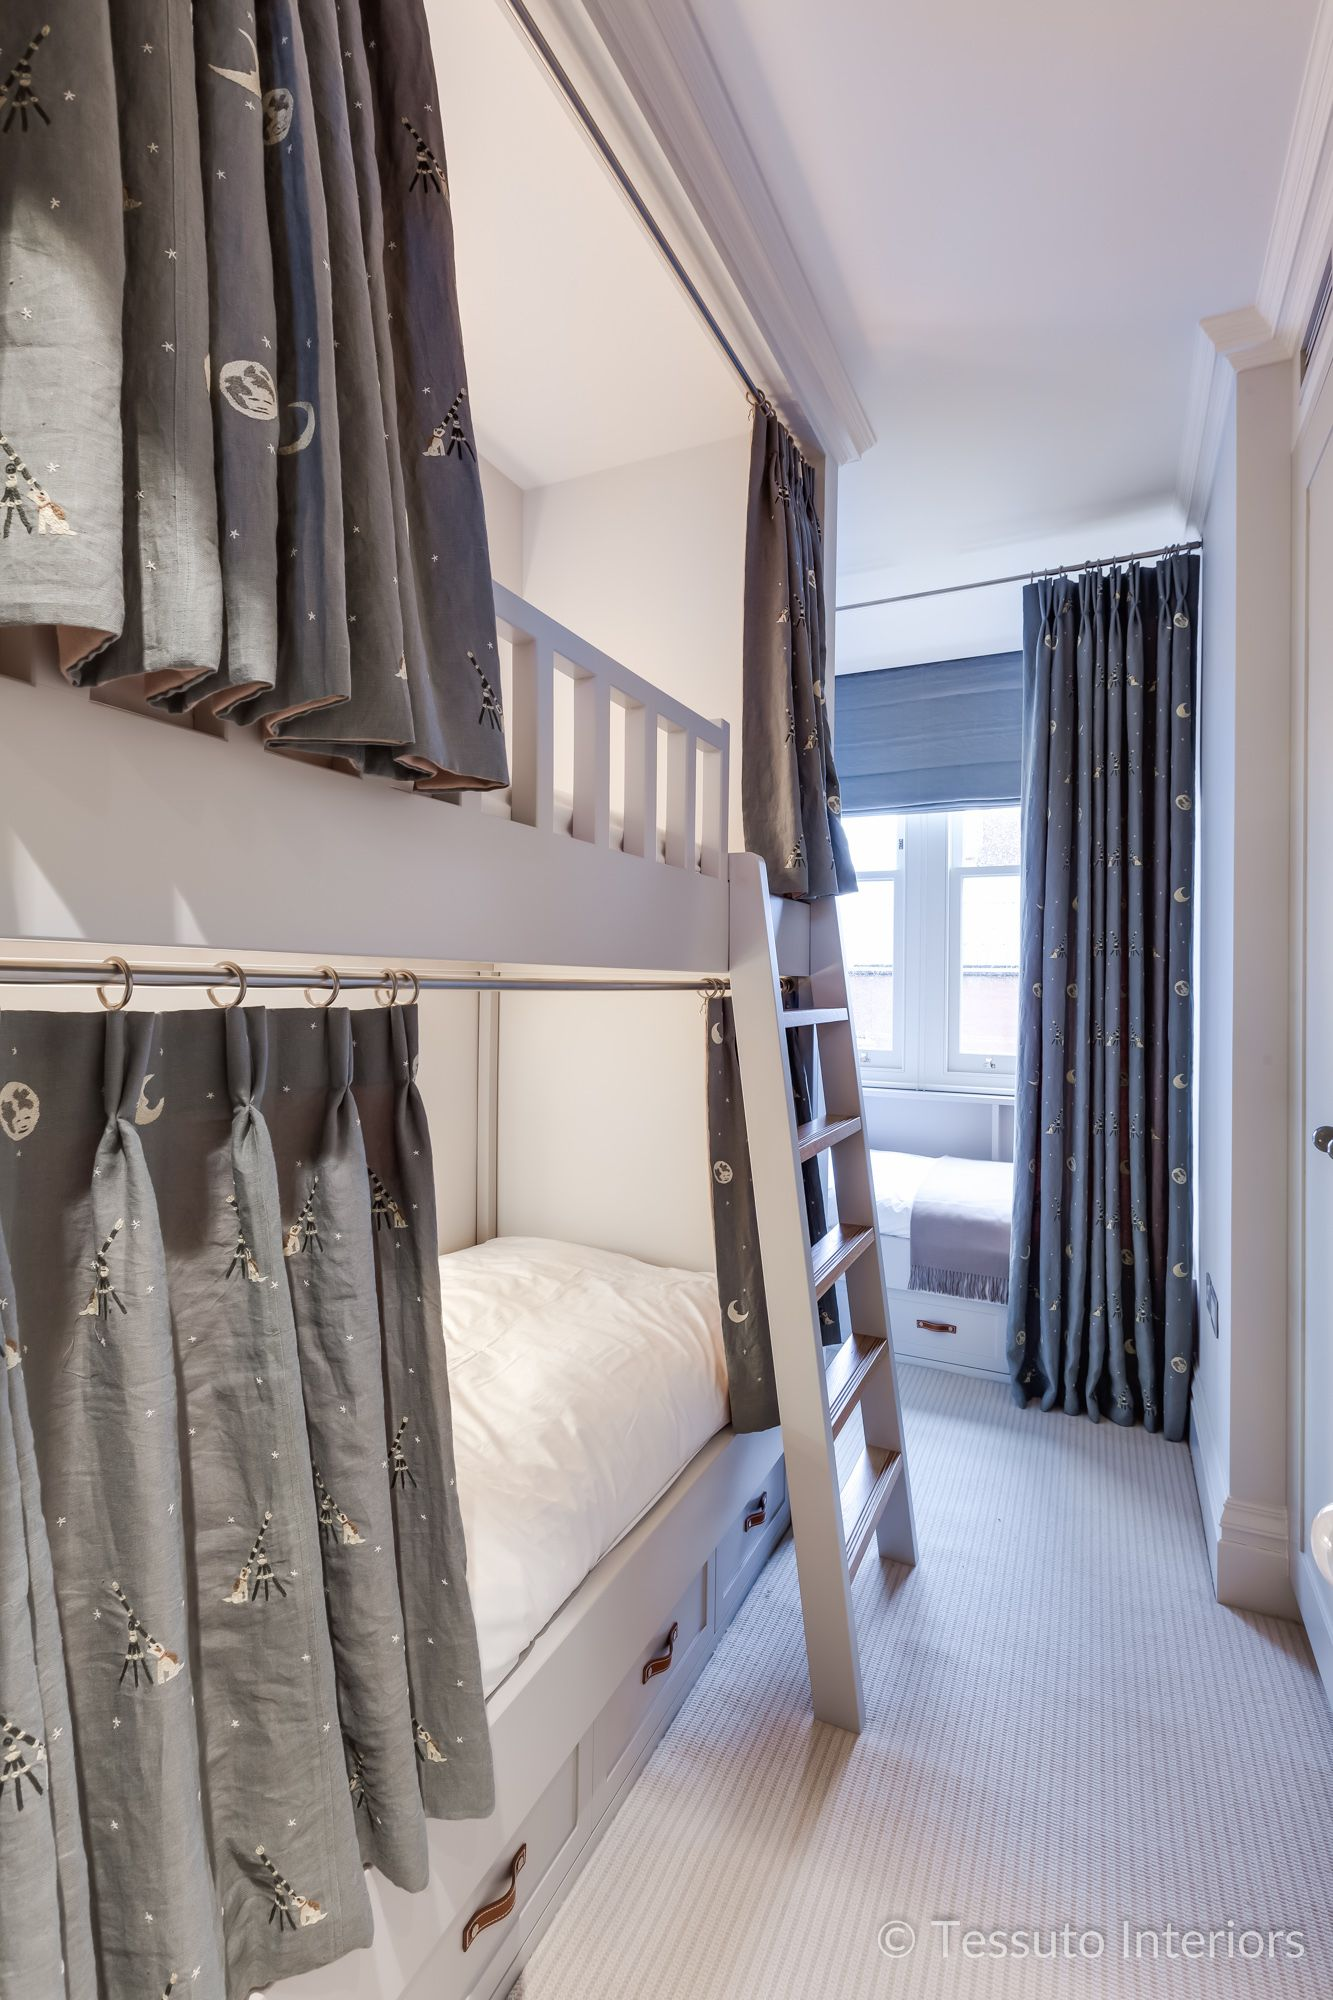 Tessuto Interiors Luxury Contemporary Children Bunk Bed Bespoke Joinery Bunk Beds Kid Beds Kids Bunk Beds